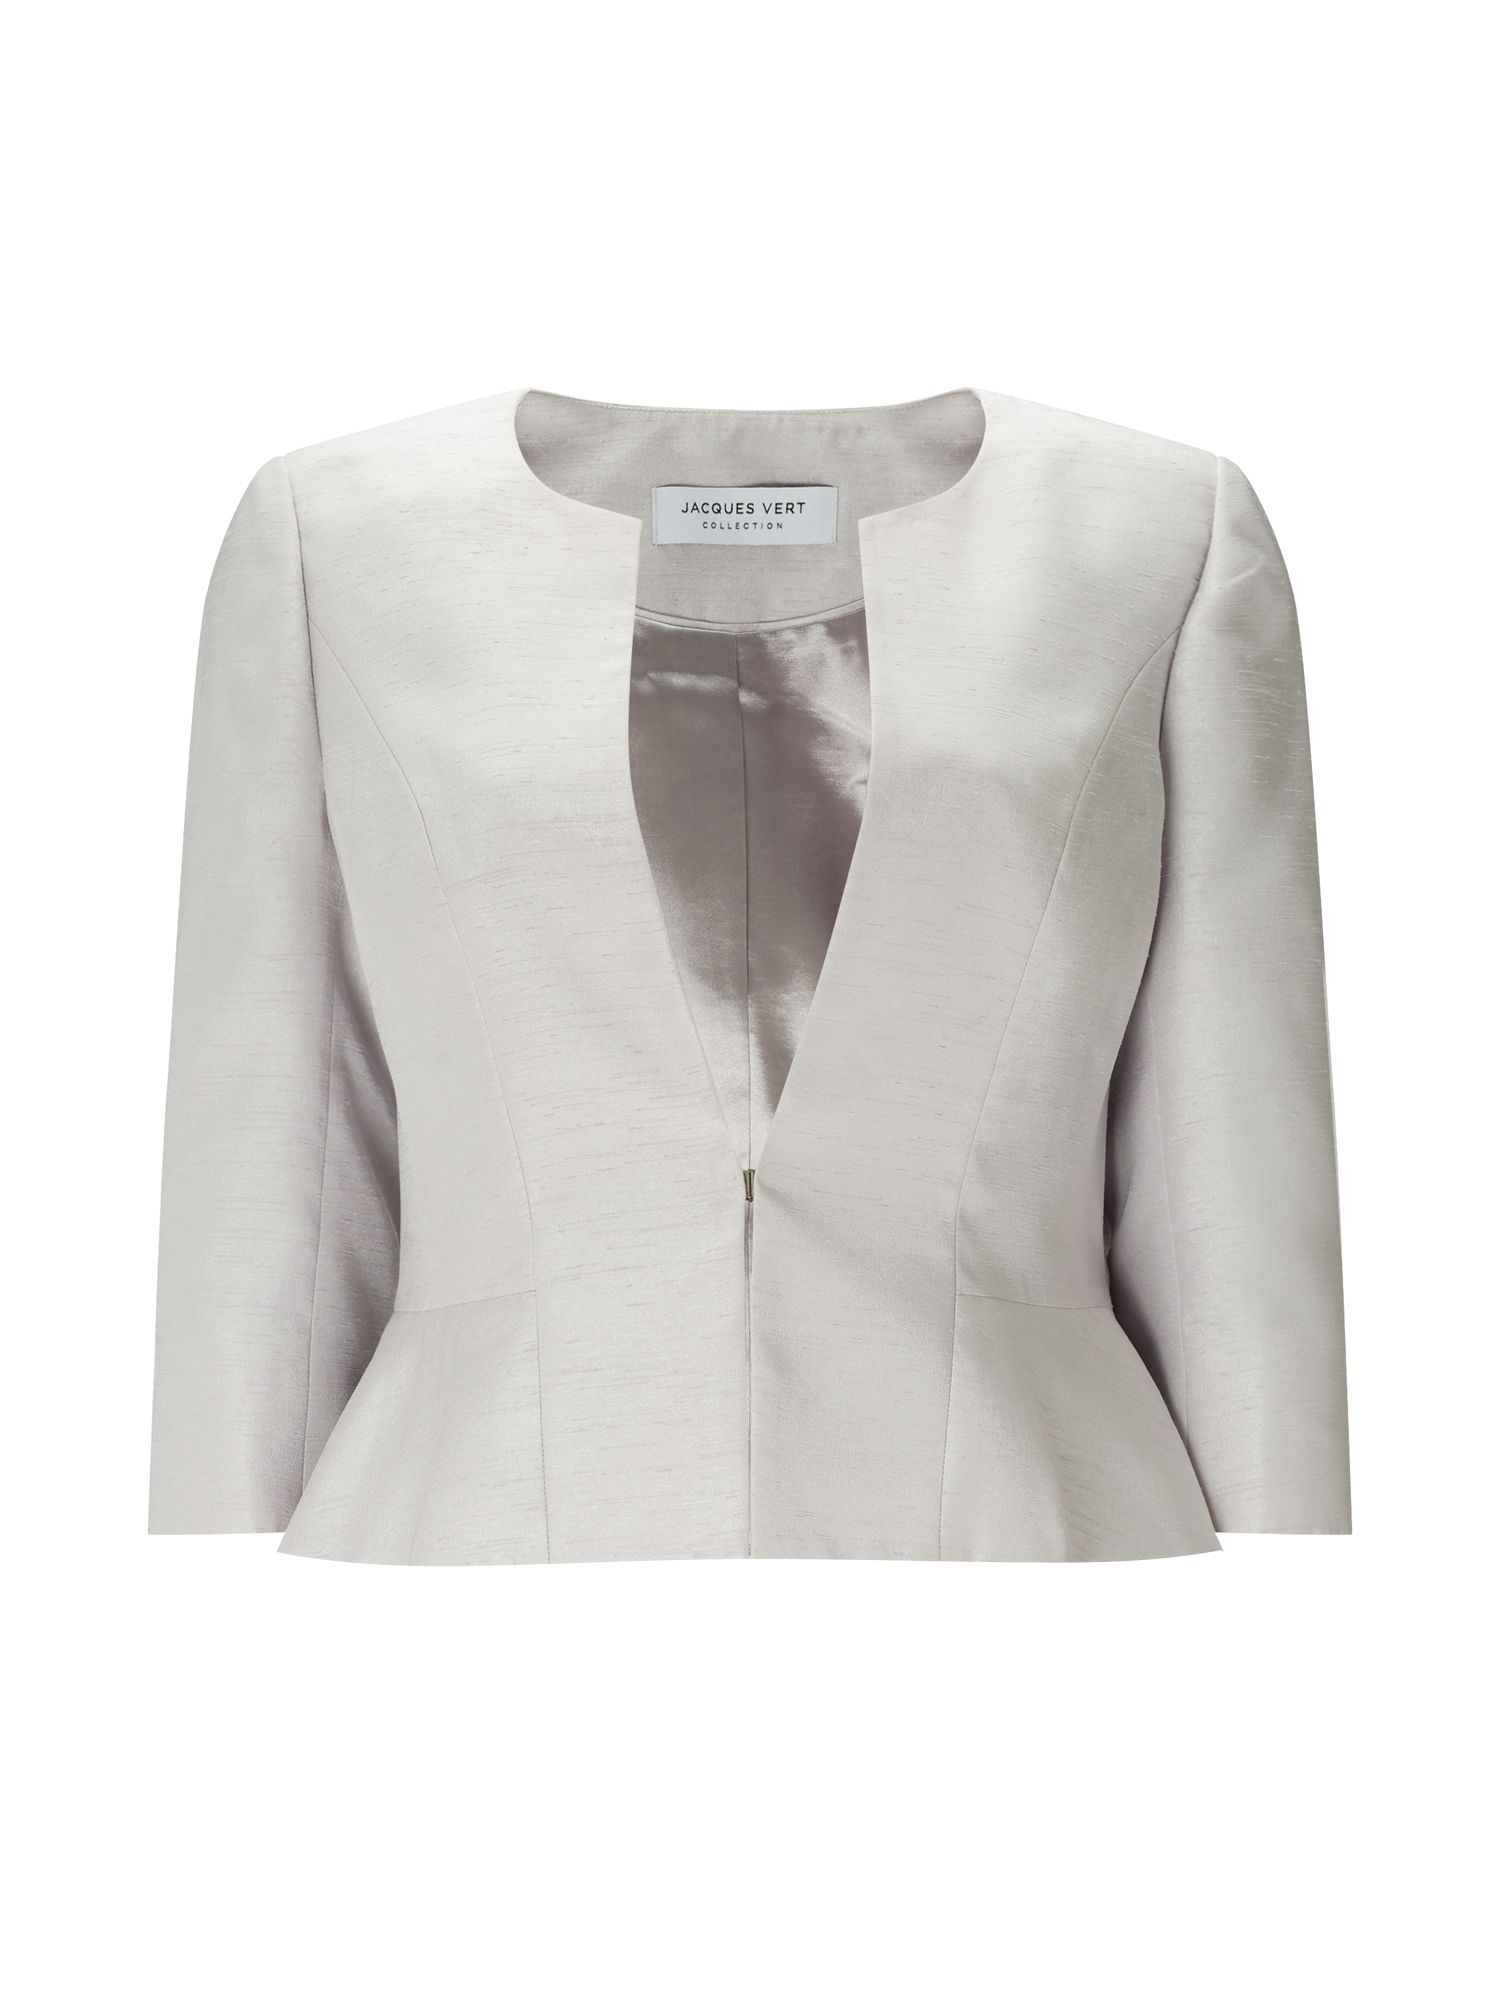 Jacques Vert Erica Shantung Jacket, Light Grey